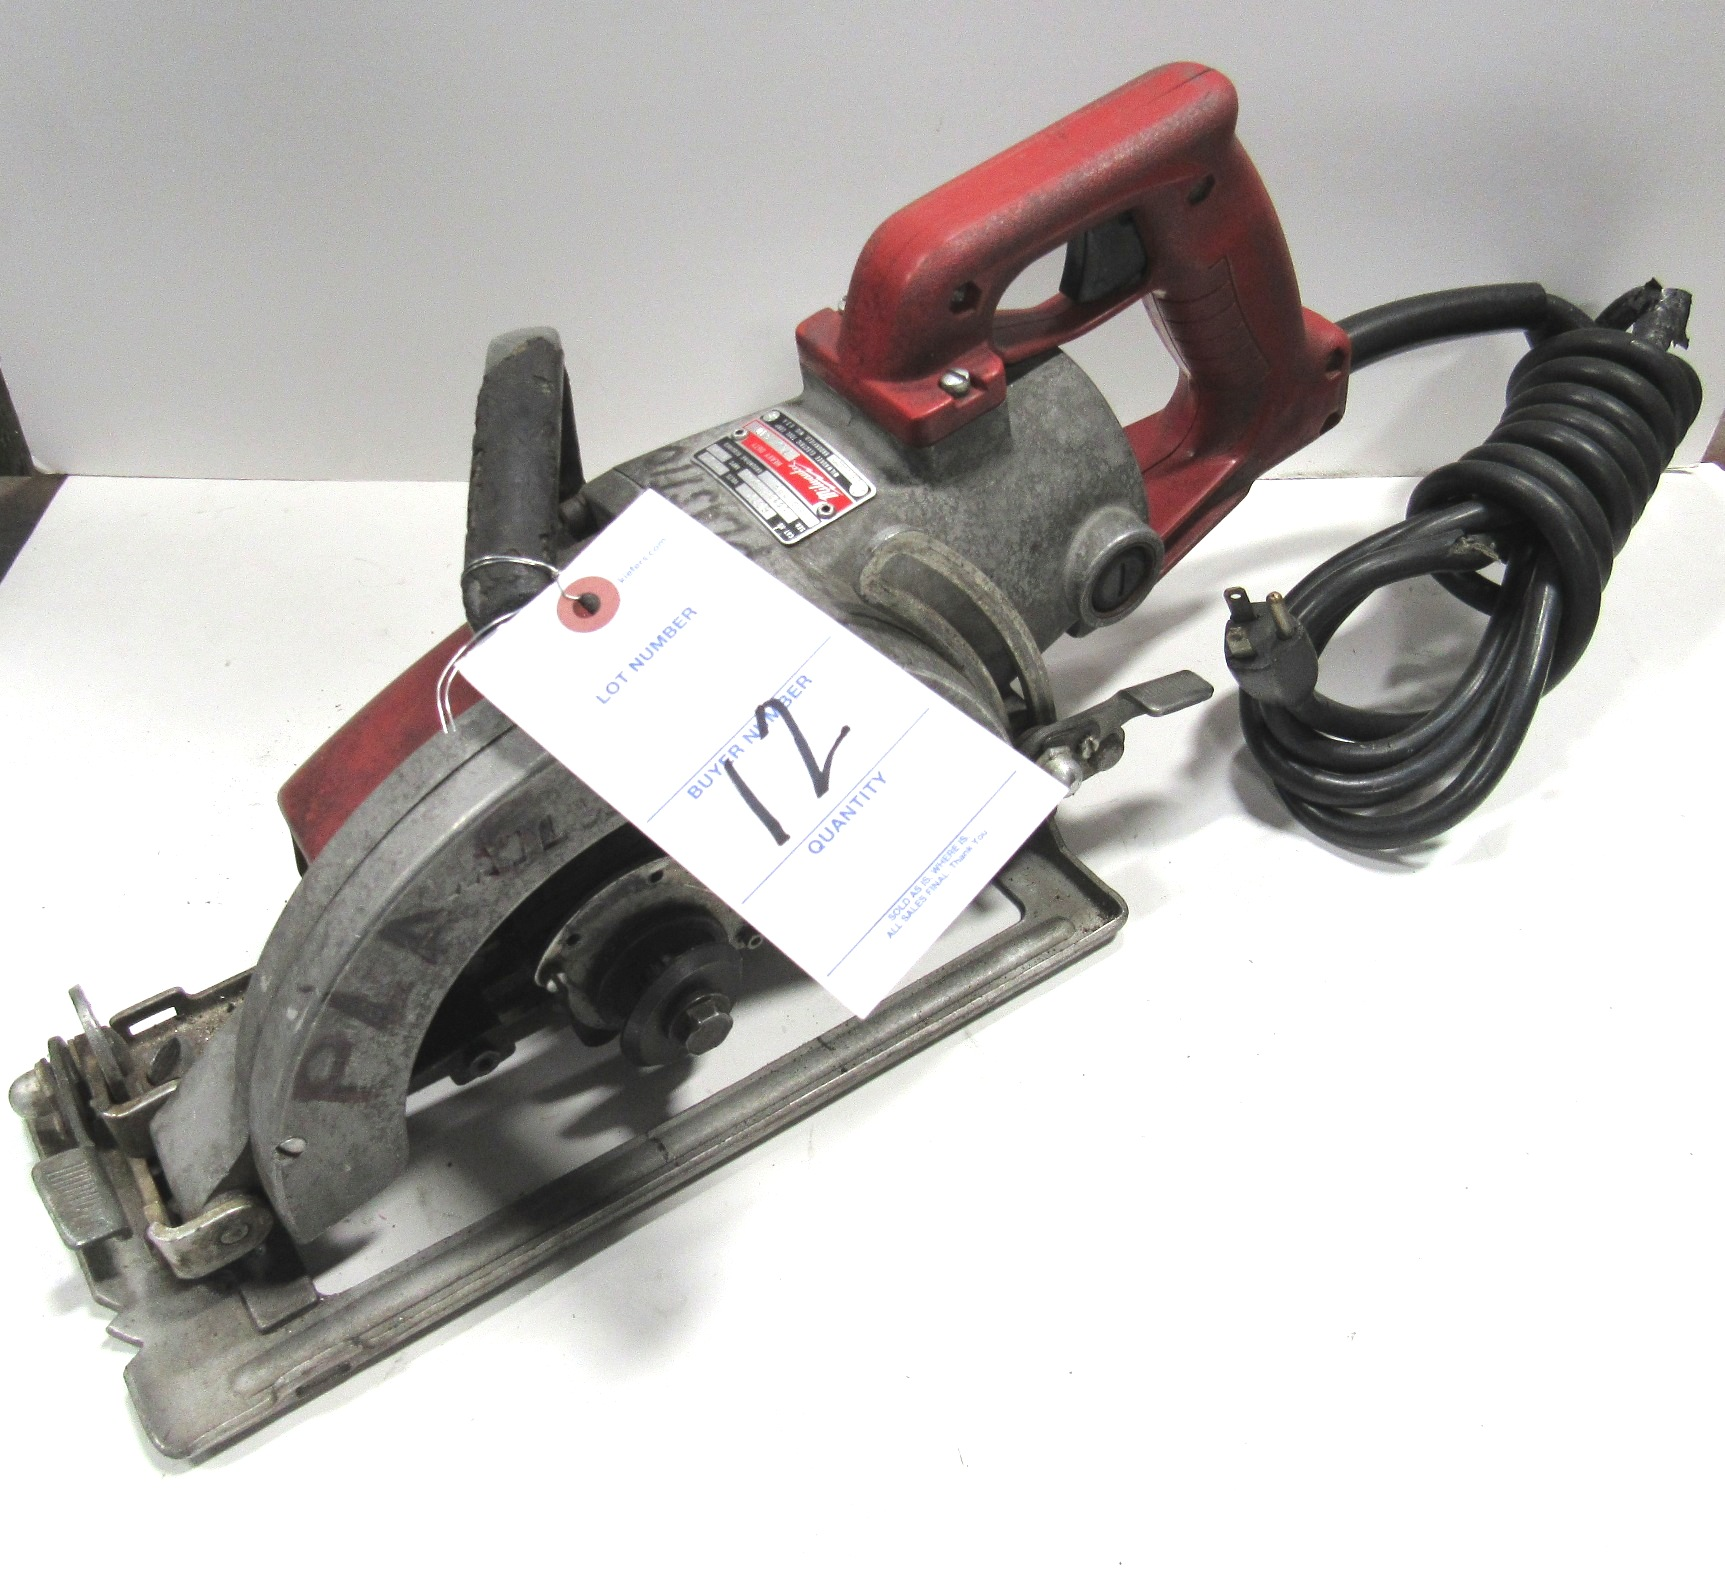 "Lot 12 - 7 1/2"" Milwaukee Mod. 6370 Heavy Duty Saw"